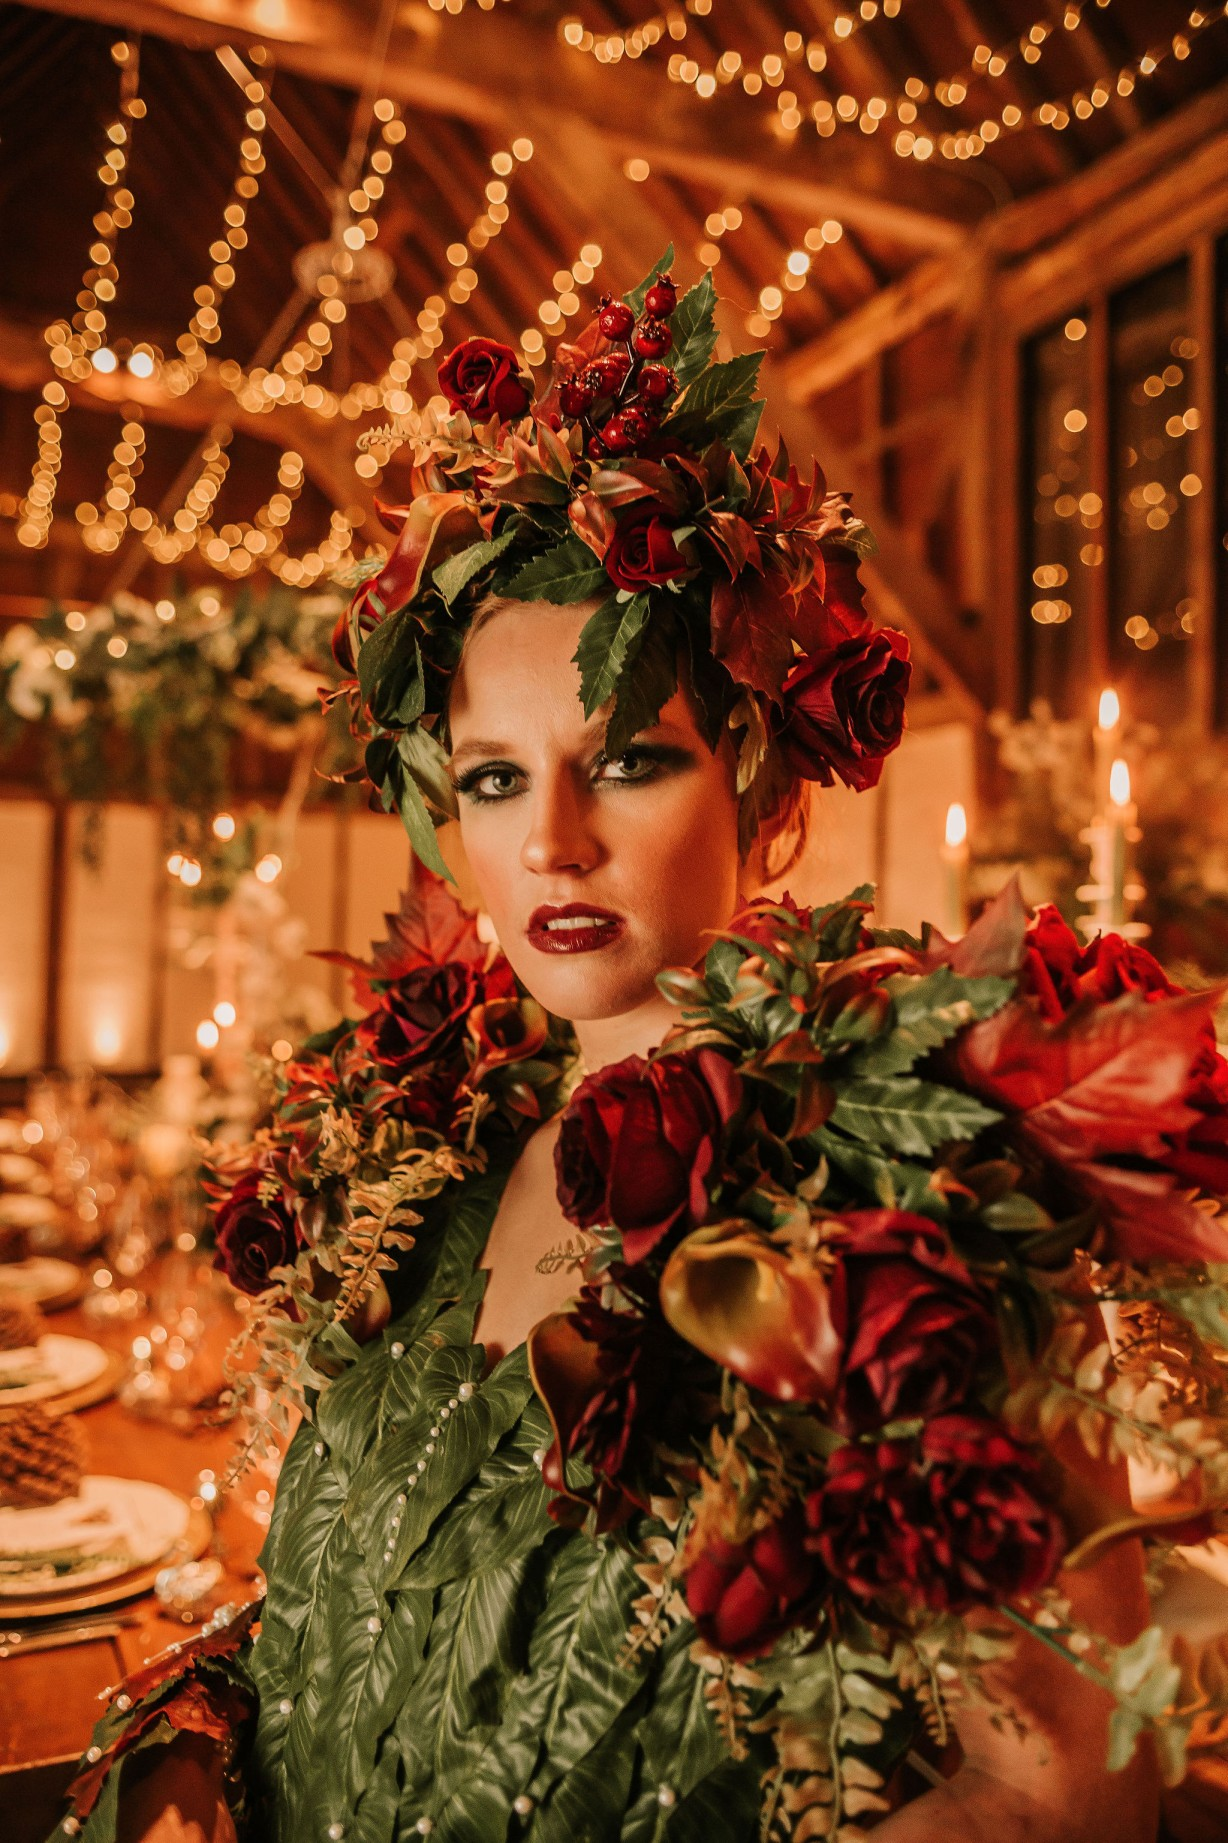 enchanting winter wedding - unique bridal look - artistic wedding ideas